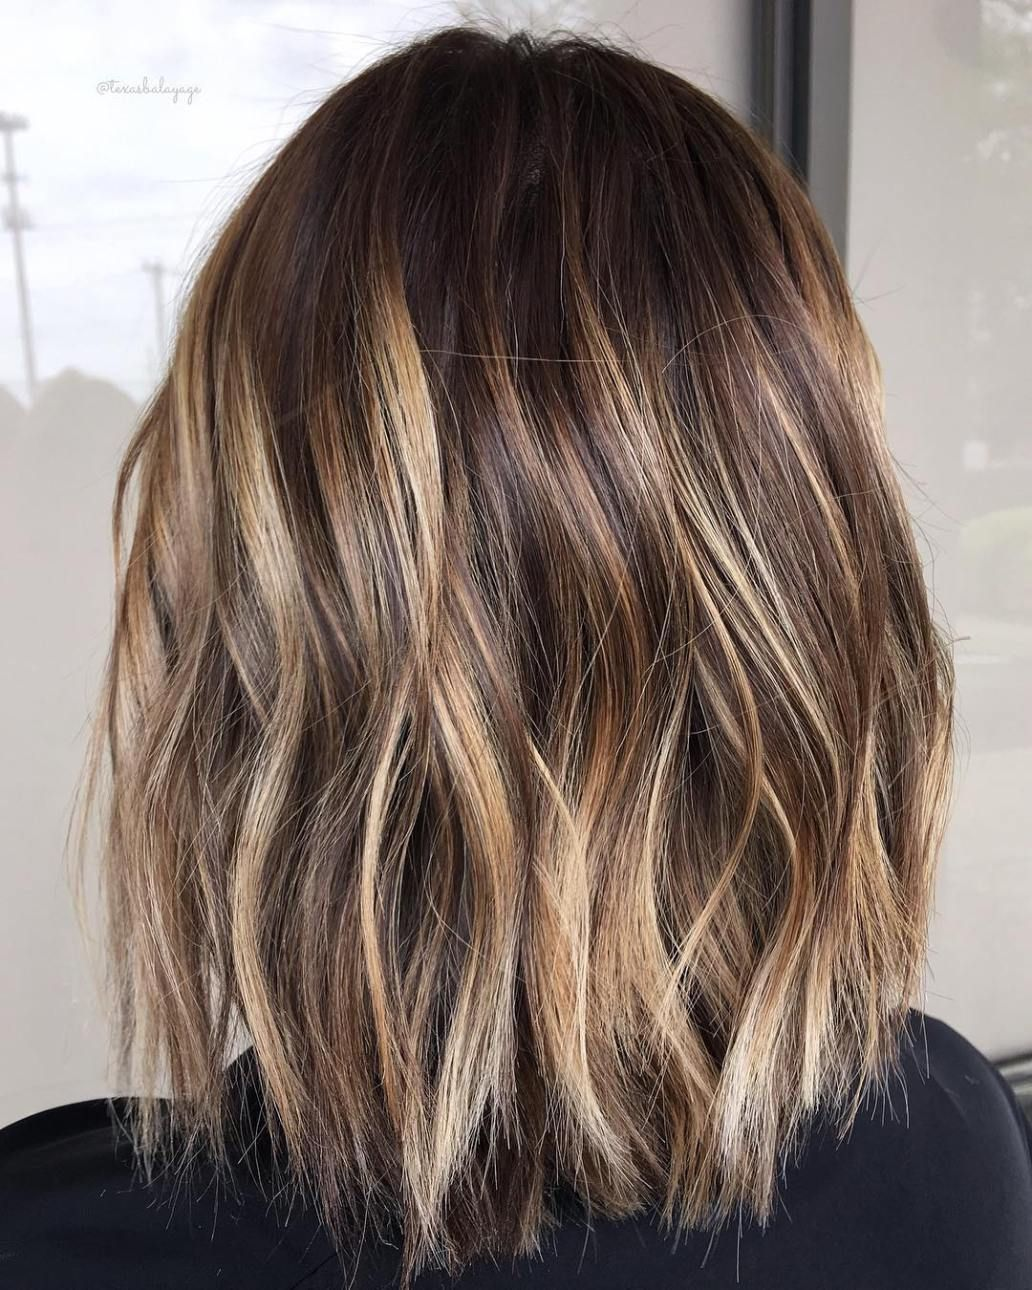 Painted Brunette Lob Hair Styles Brown Hair With Blonde Highlights Balayage Hair